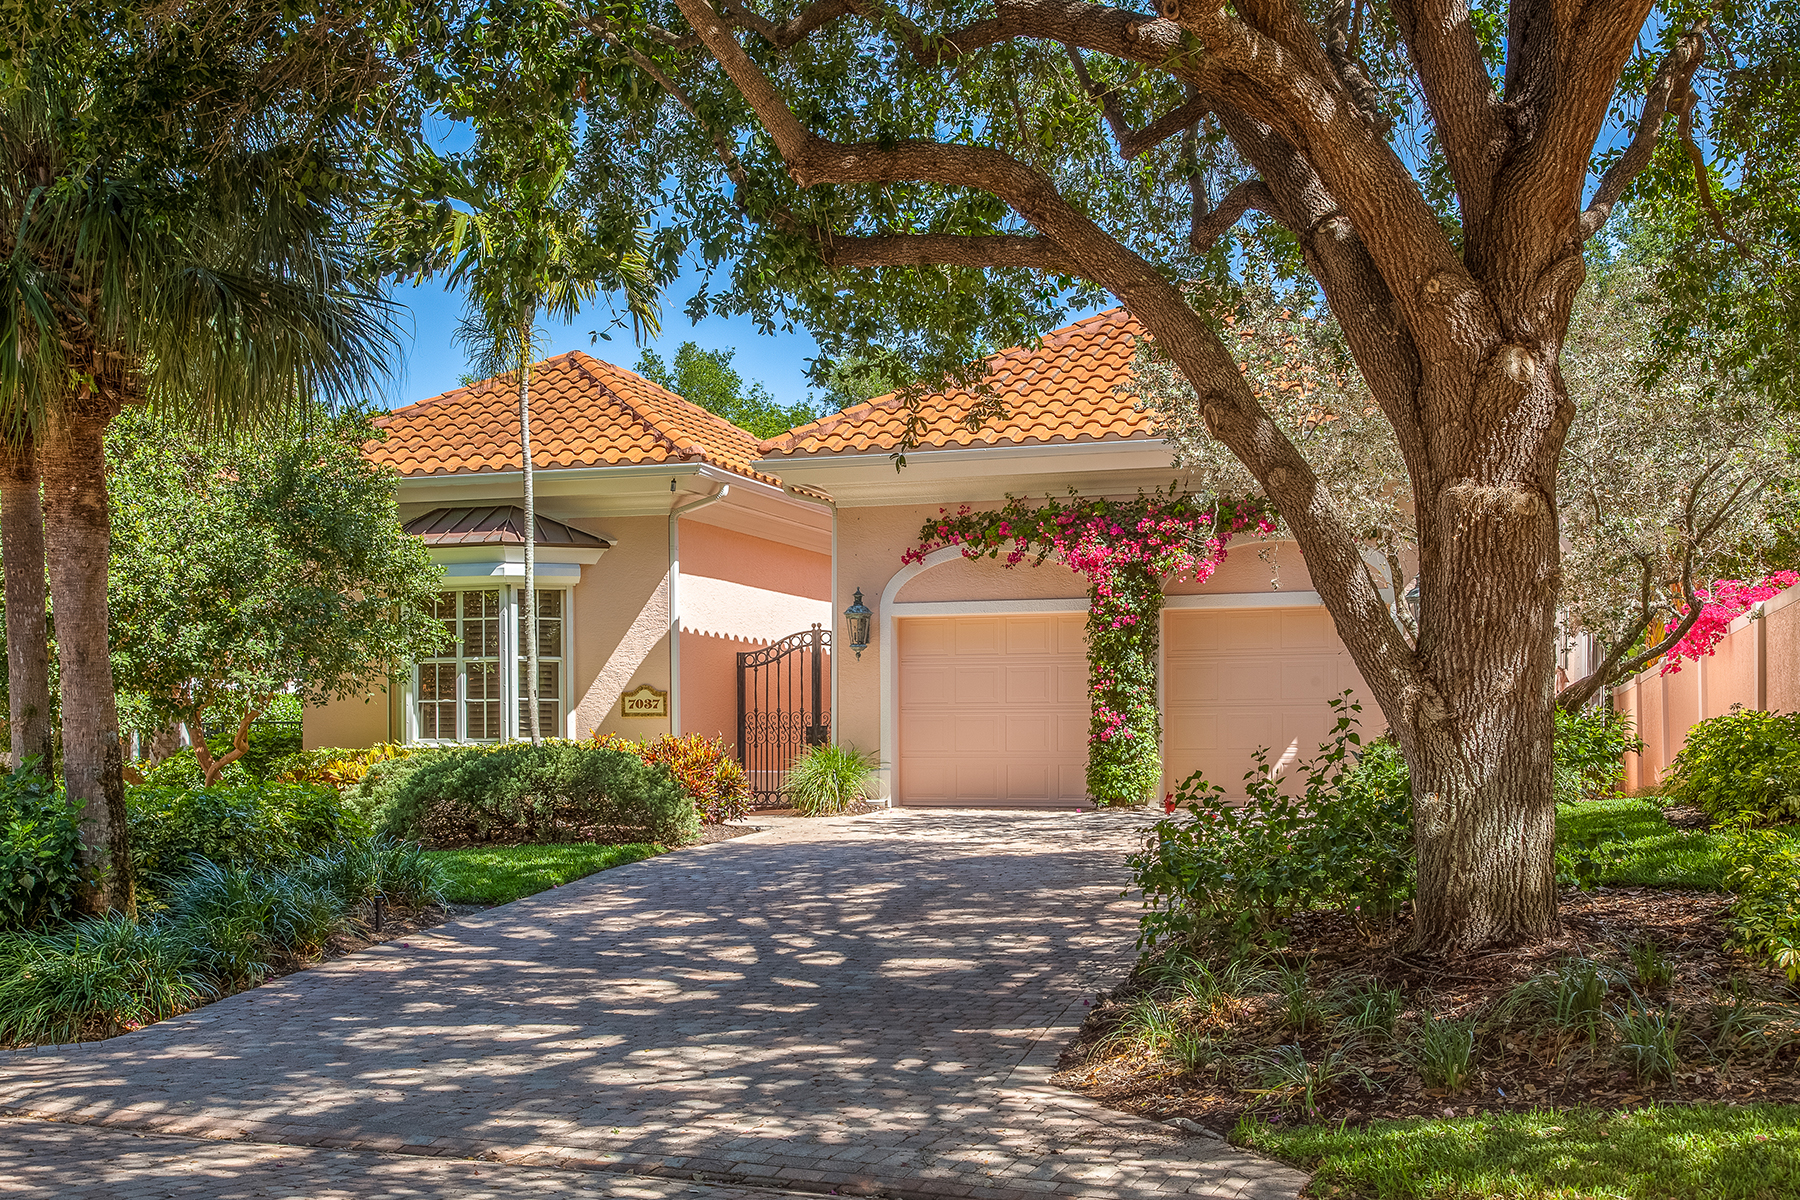 Single Family Home for Sale at PELICAN BAY - ISLE VERDE 7037 Verde Way, Naples, Florida 34108 United States